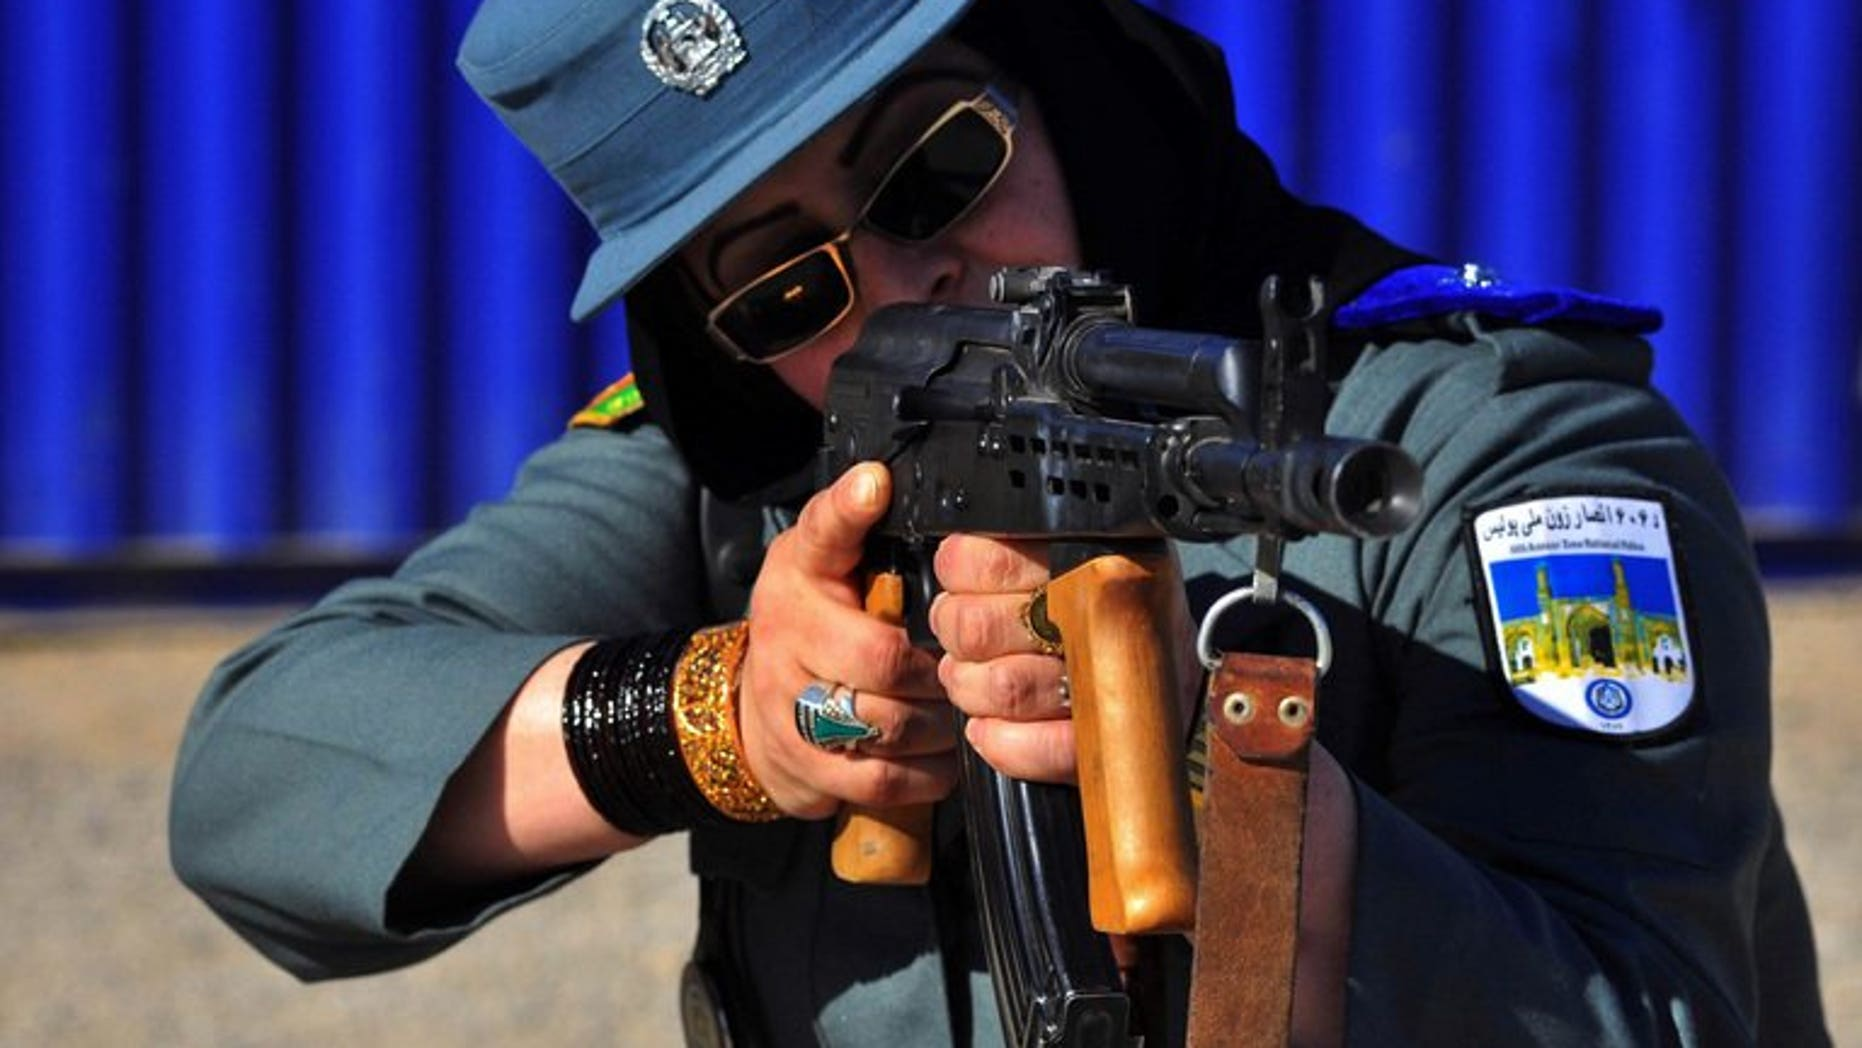 An Afghan female police officer practices aiming with a Kalashnikov assault rifle at the Police Training Center in Herat province on December 8, 2011. Women make up only one percent of Afghanistan's police force and as a result women are reluctant to seek justice for rising levels of violence, international aid agency Oxfam said Tuesday.